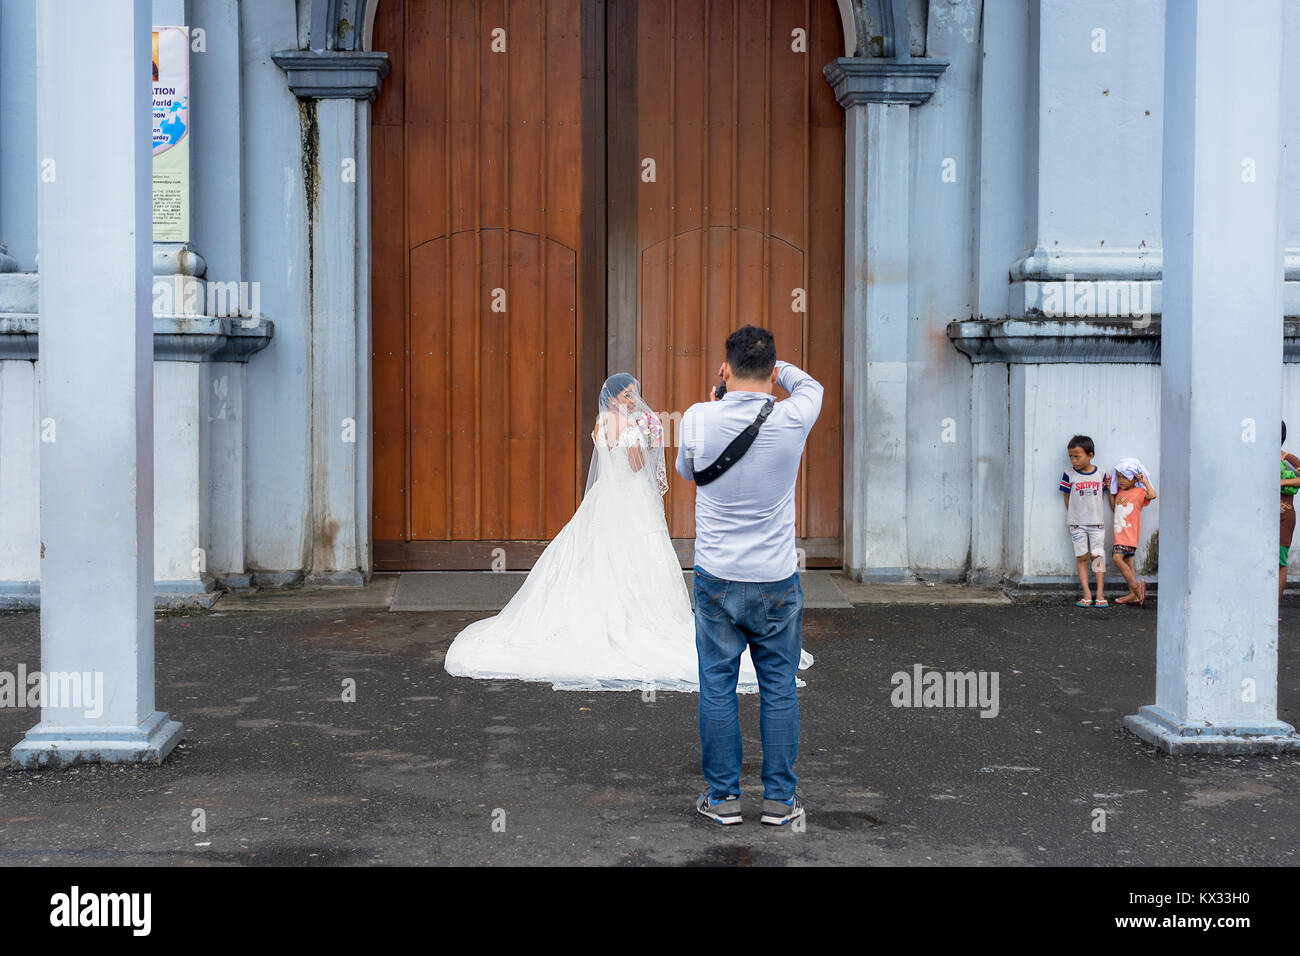 A wedding photographer taking the final photos before the bride in her white wedding dress enters the church whilst - Stock Image